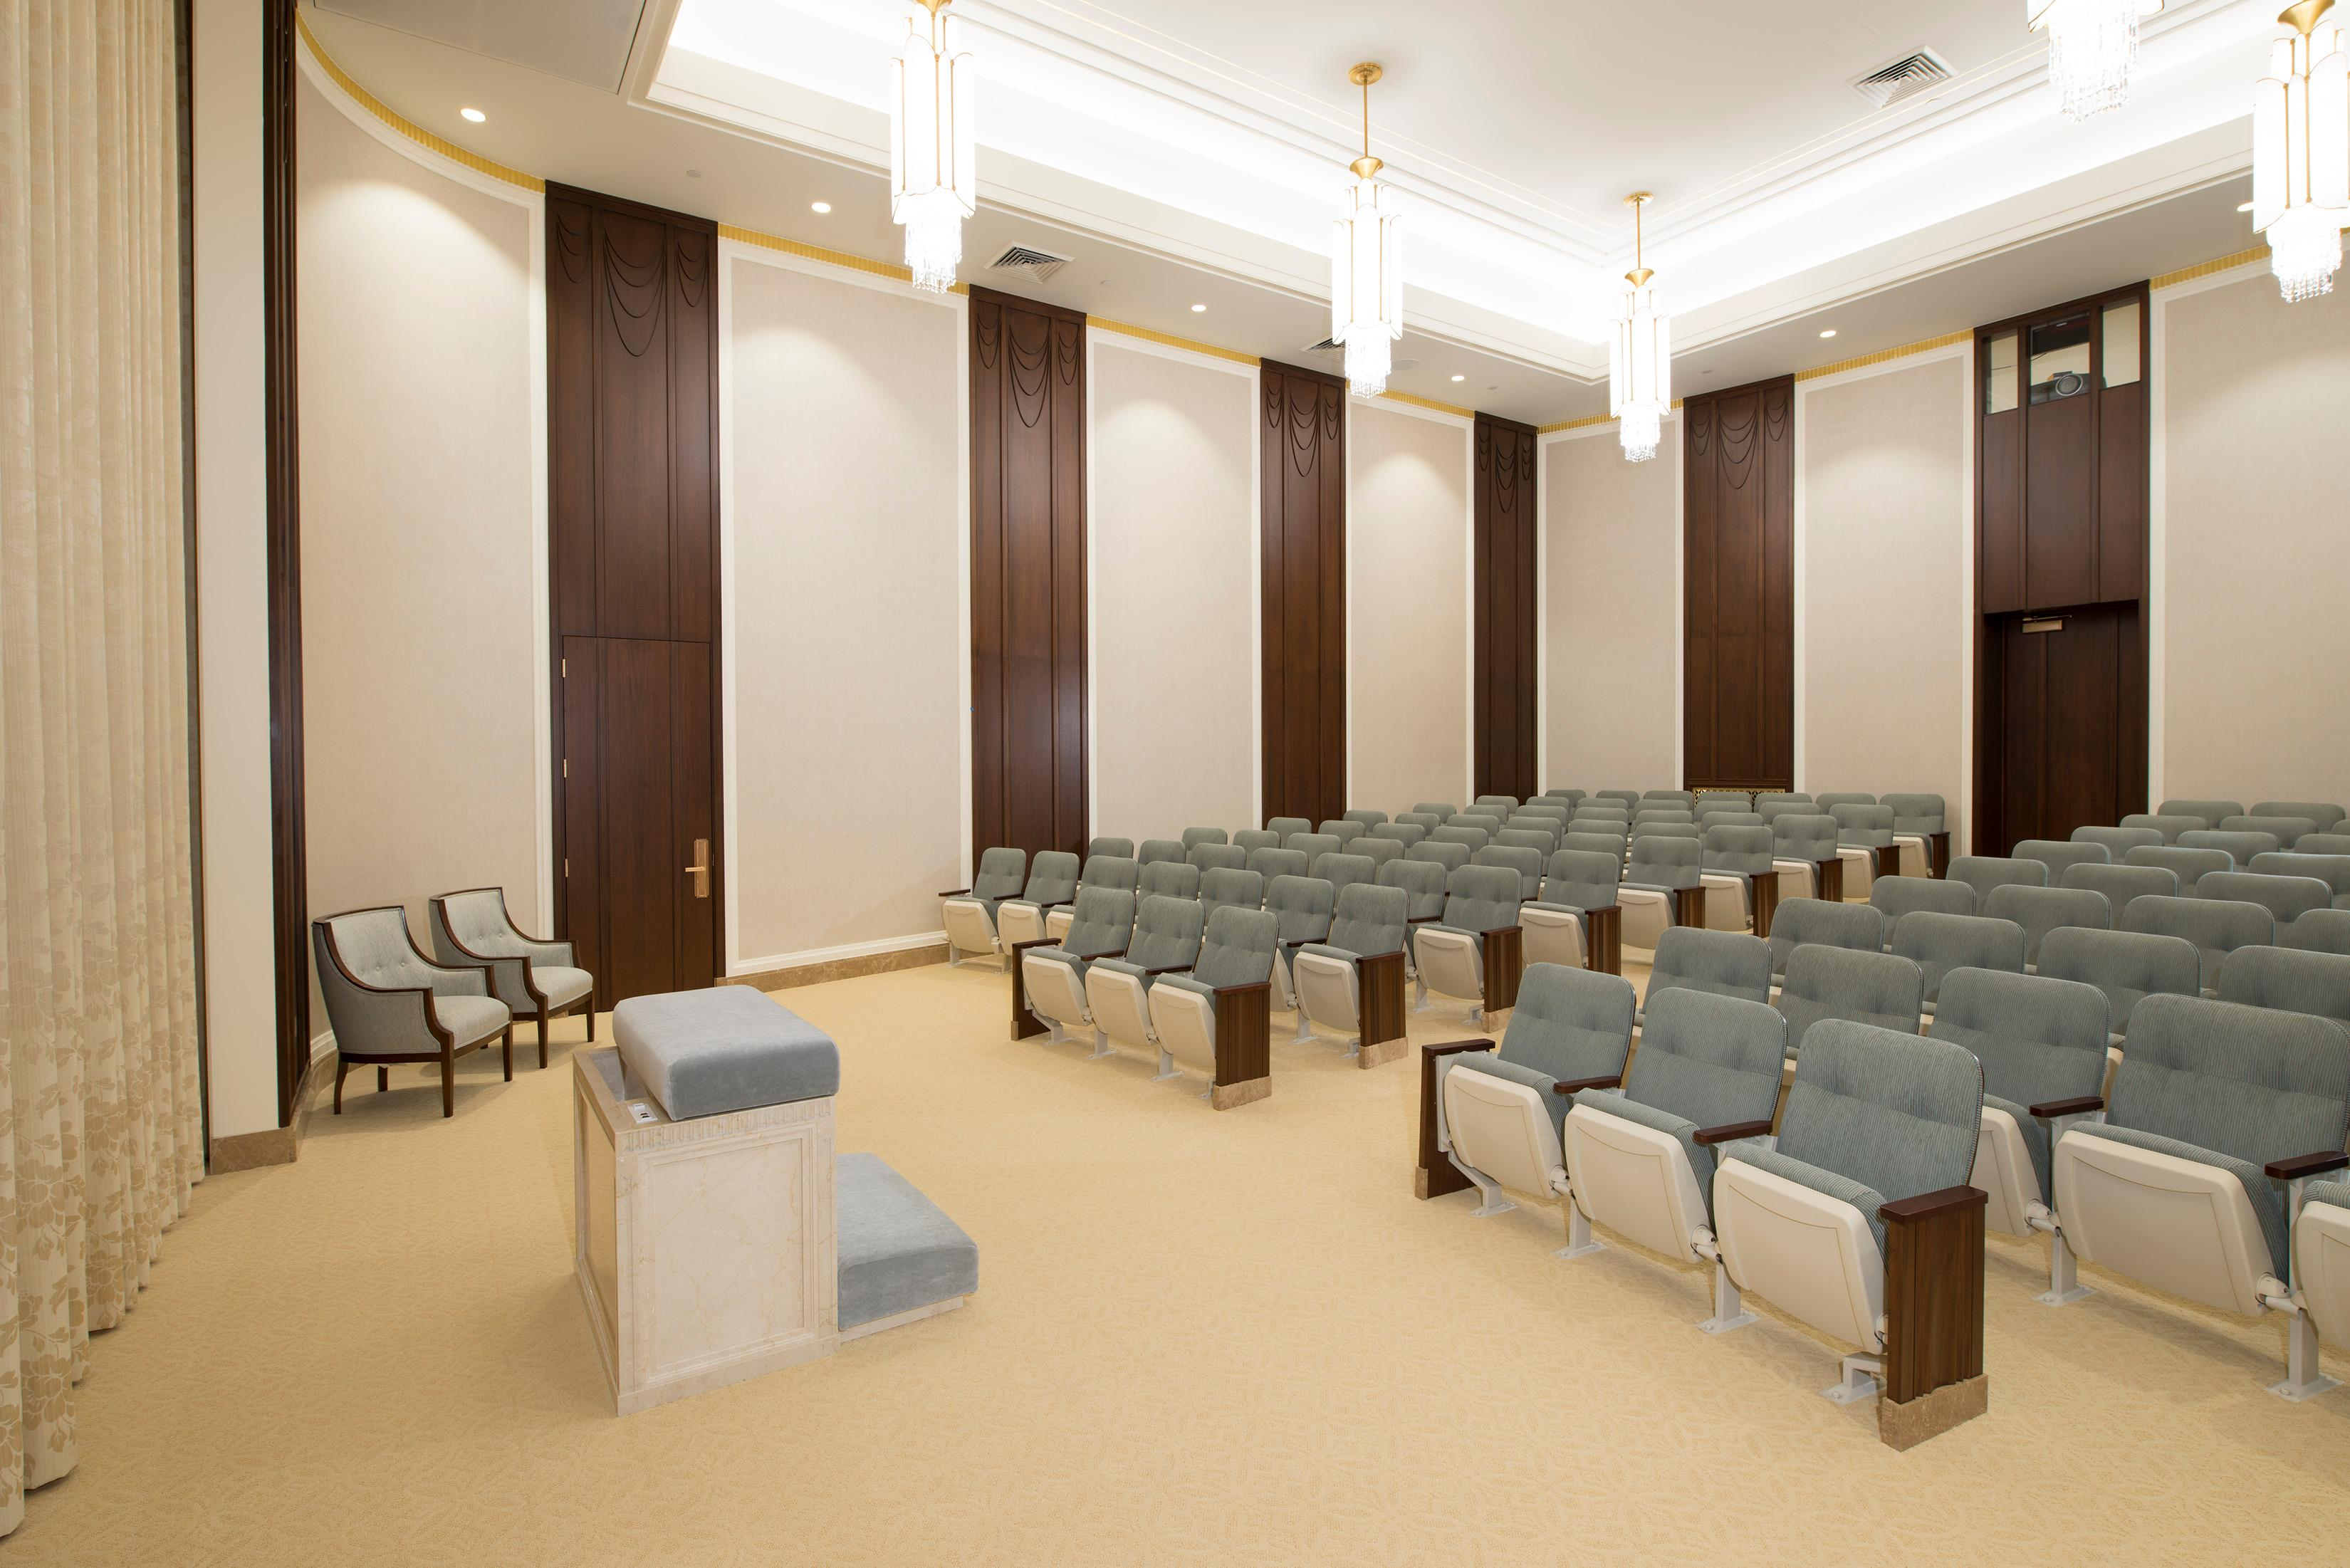 An instruction room in the Jordan River Utah Temple. ©2018 BY INTELLECTUAL RESERVE, INC. ALL RIGHTS RESERVED.